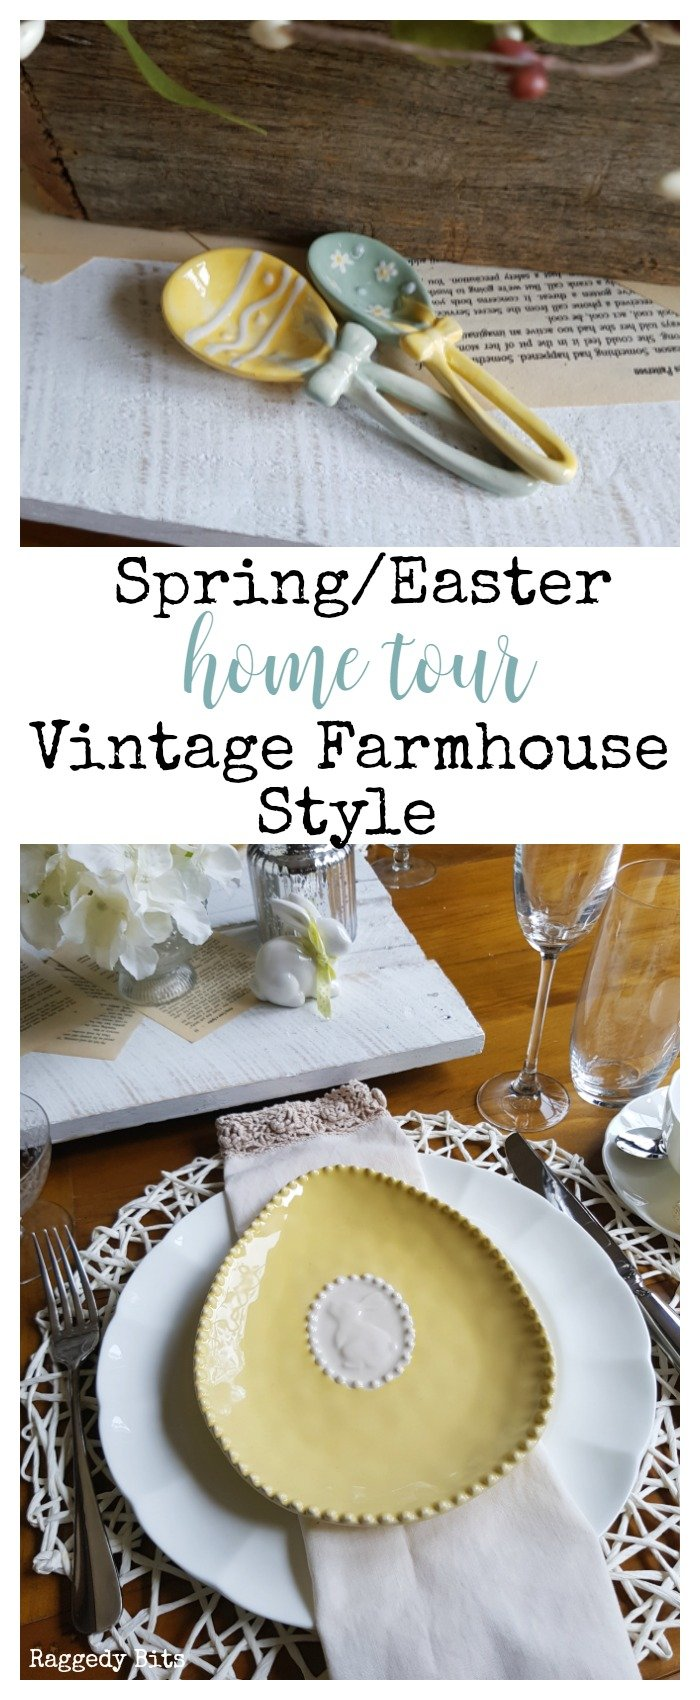 A fun and cherry Spring-Easter Home Tour Vintage Farmhouse Style! With lots of bunnies to put a bit of hop into your step | www.raggedy-bits.com